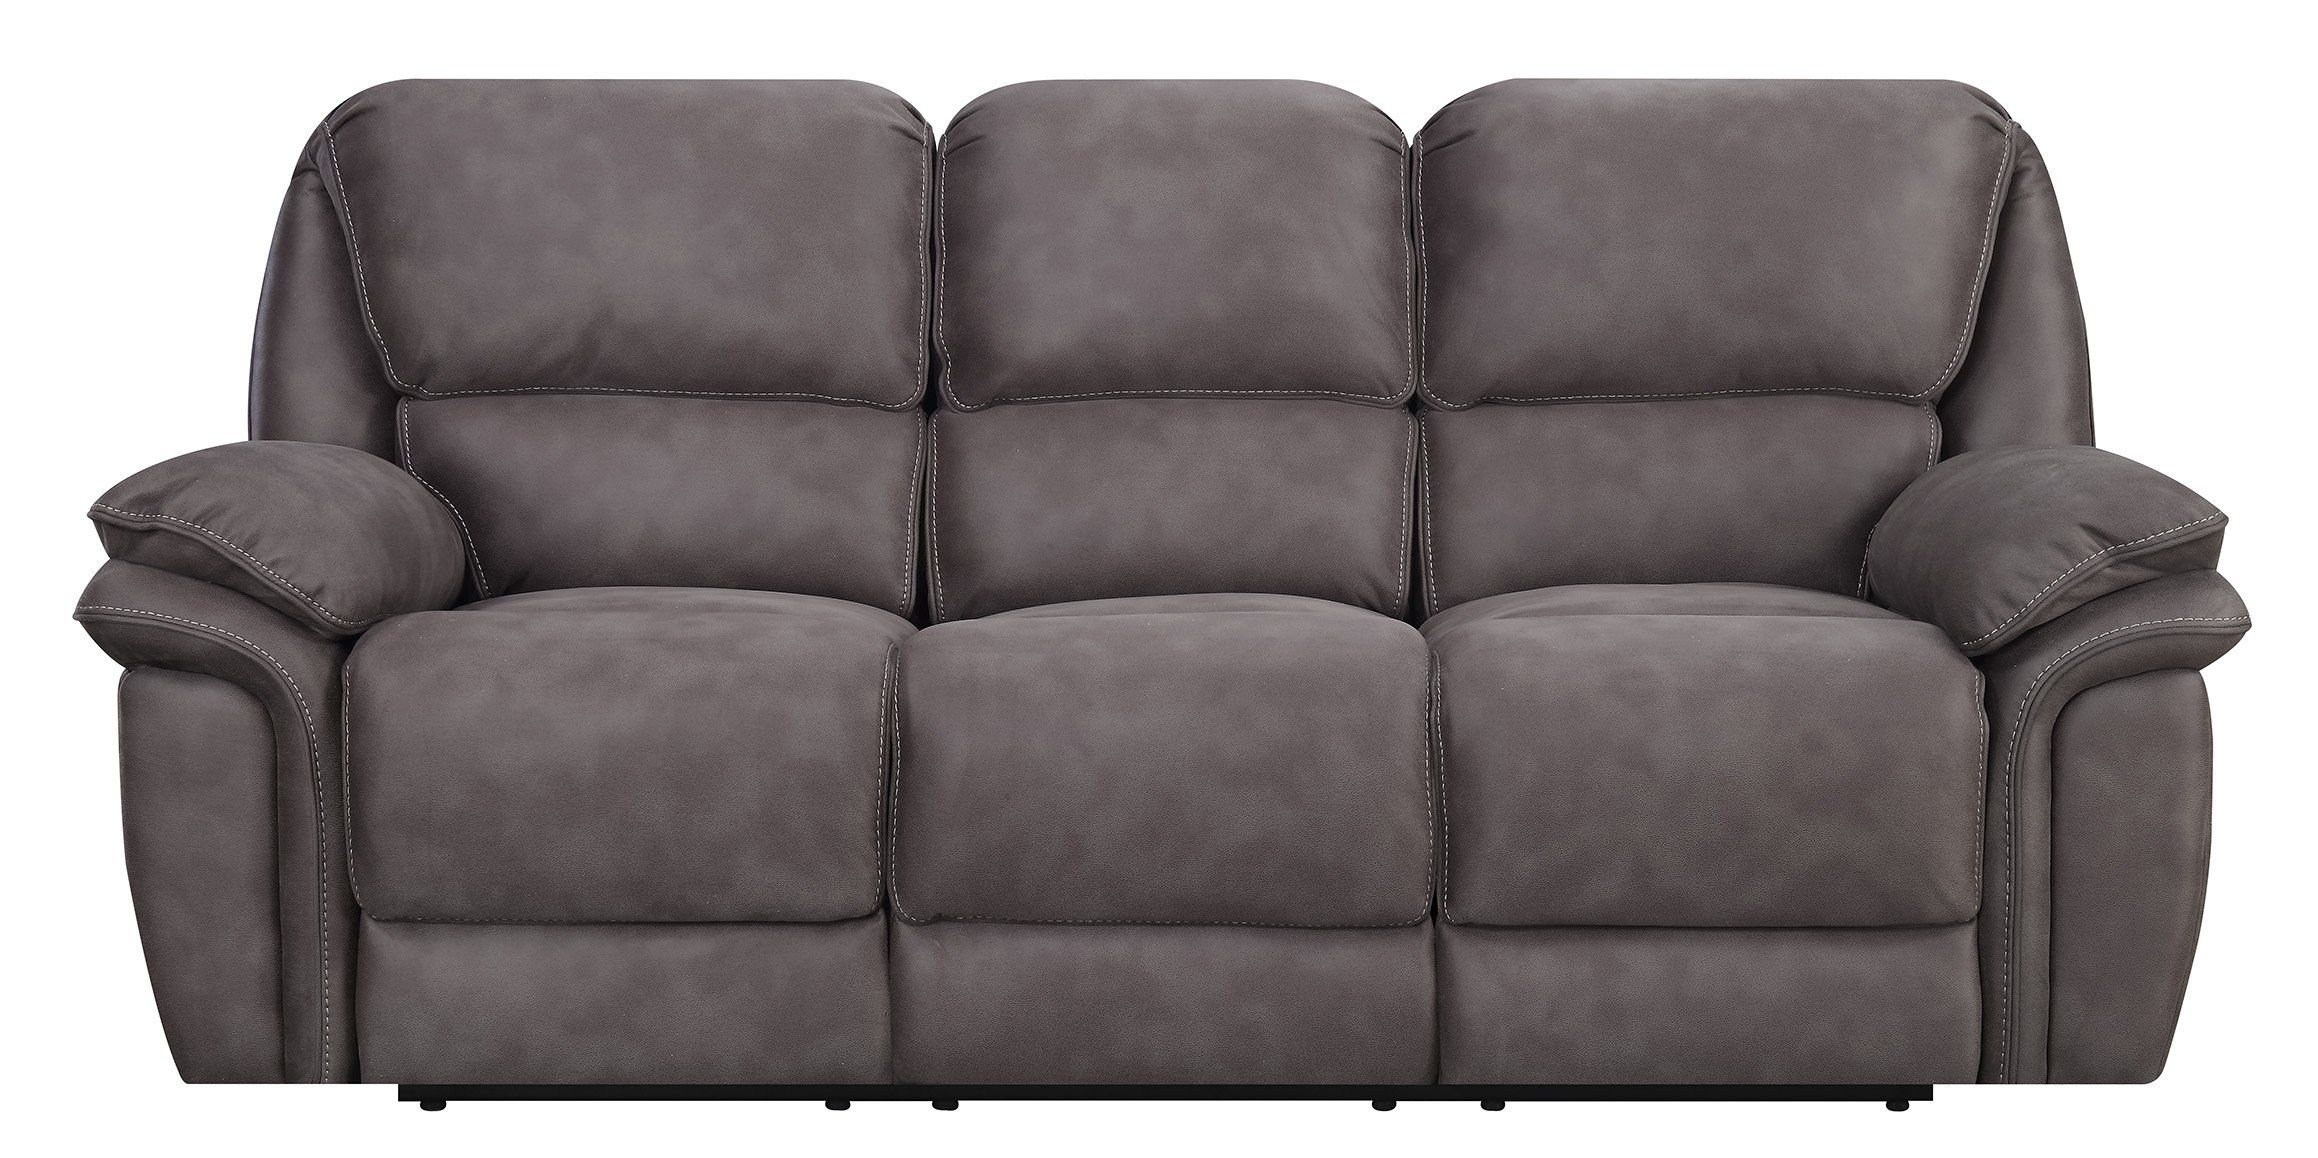 MStar Jackson 3 Seat Dual Power Reclining Sofa with USB ...